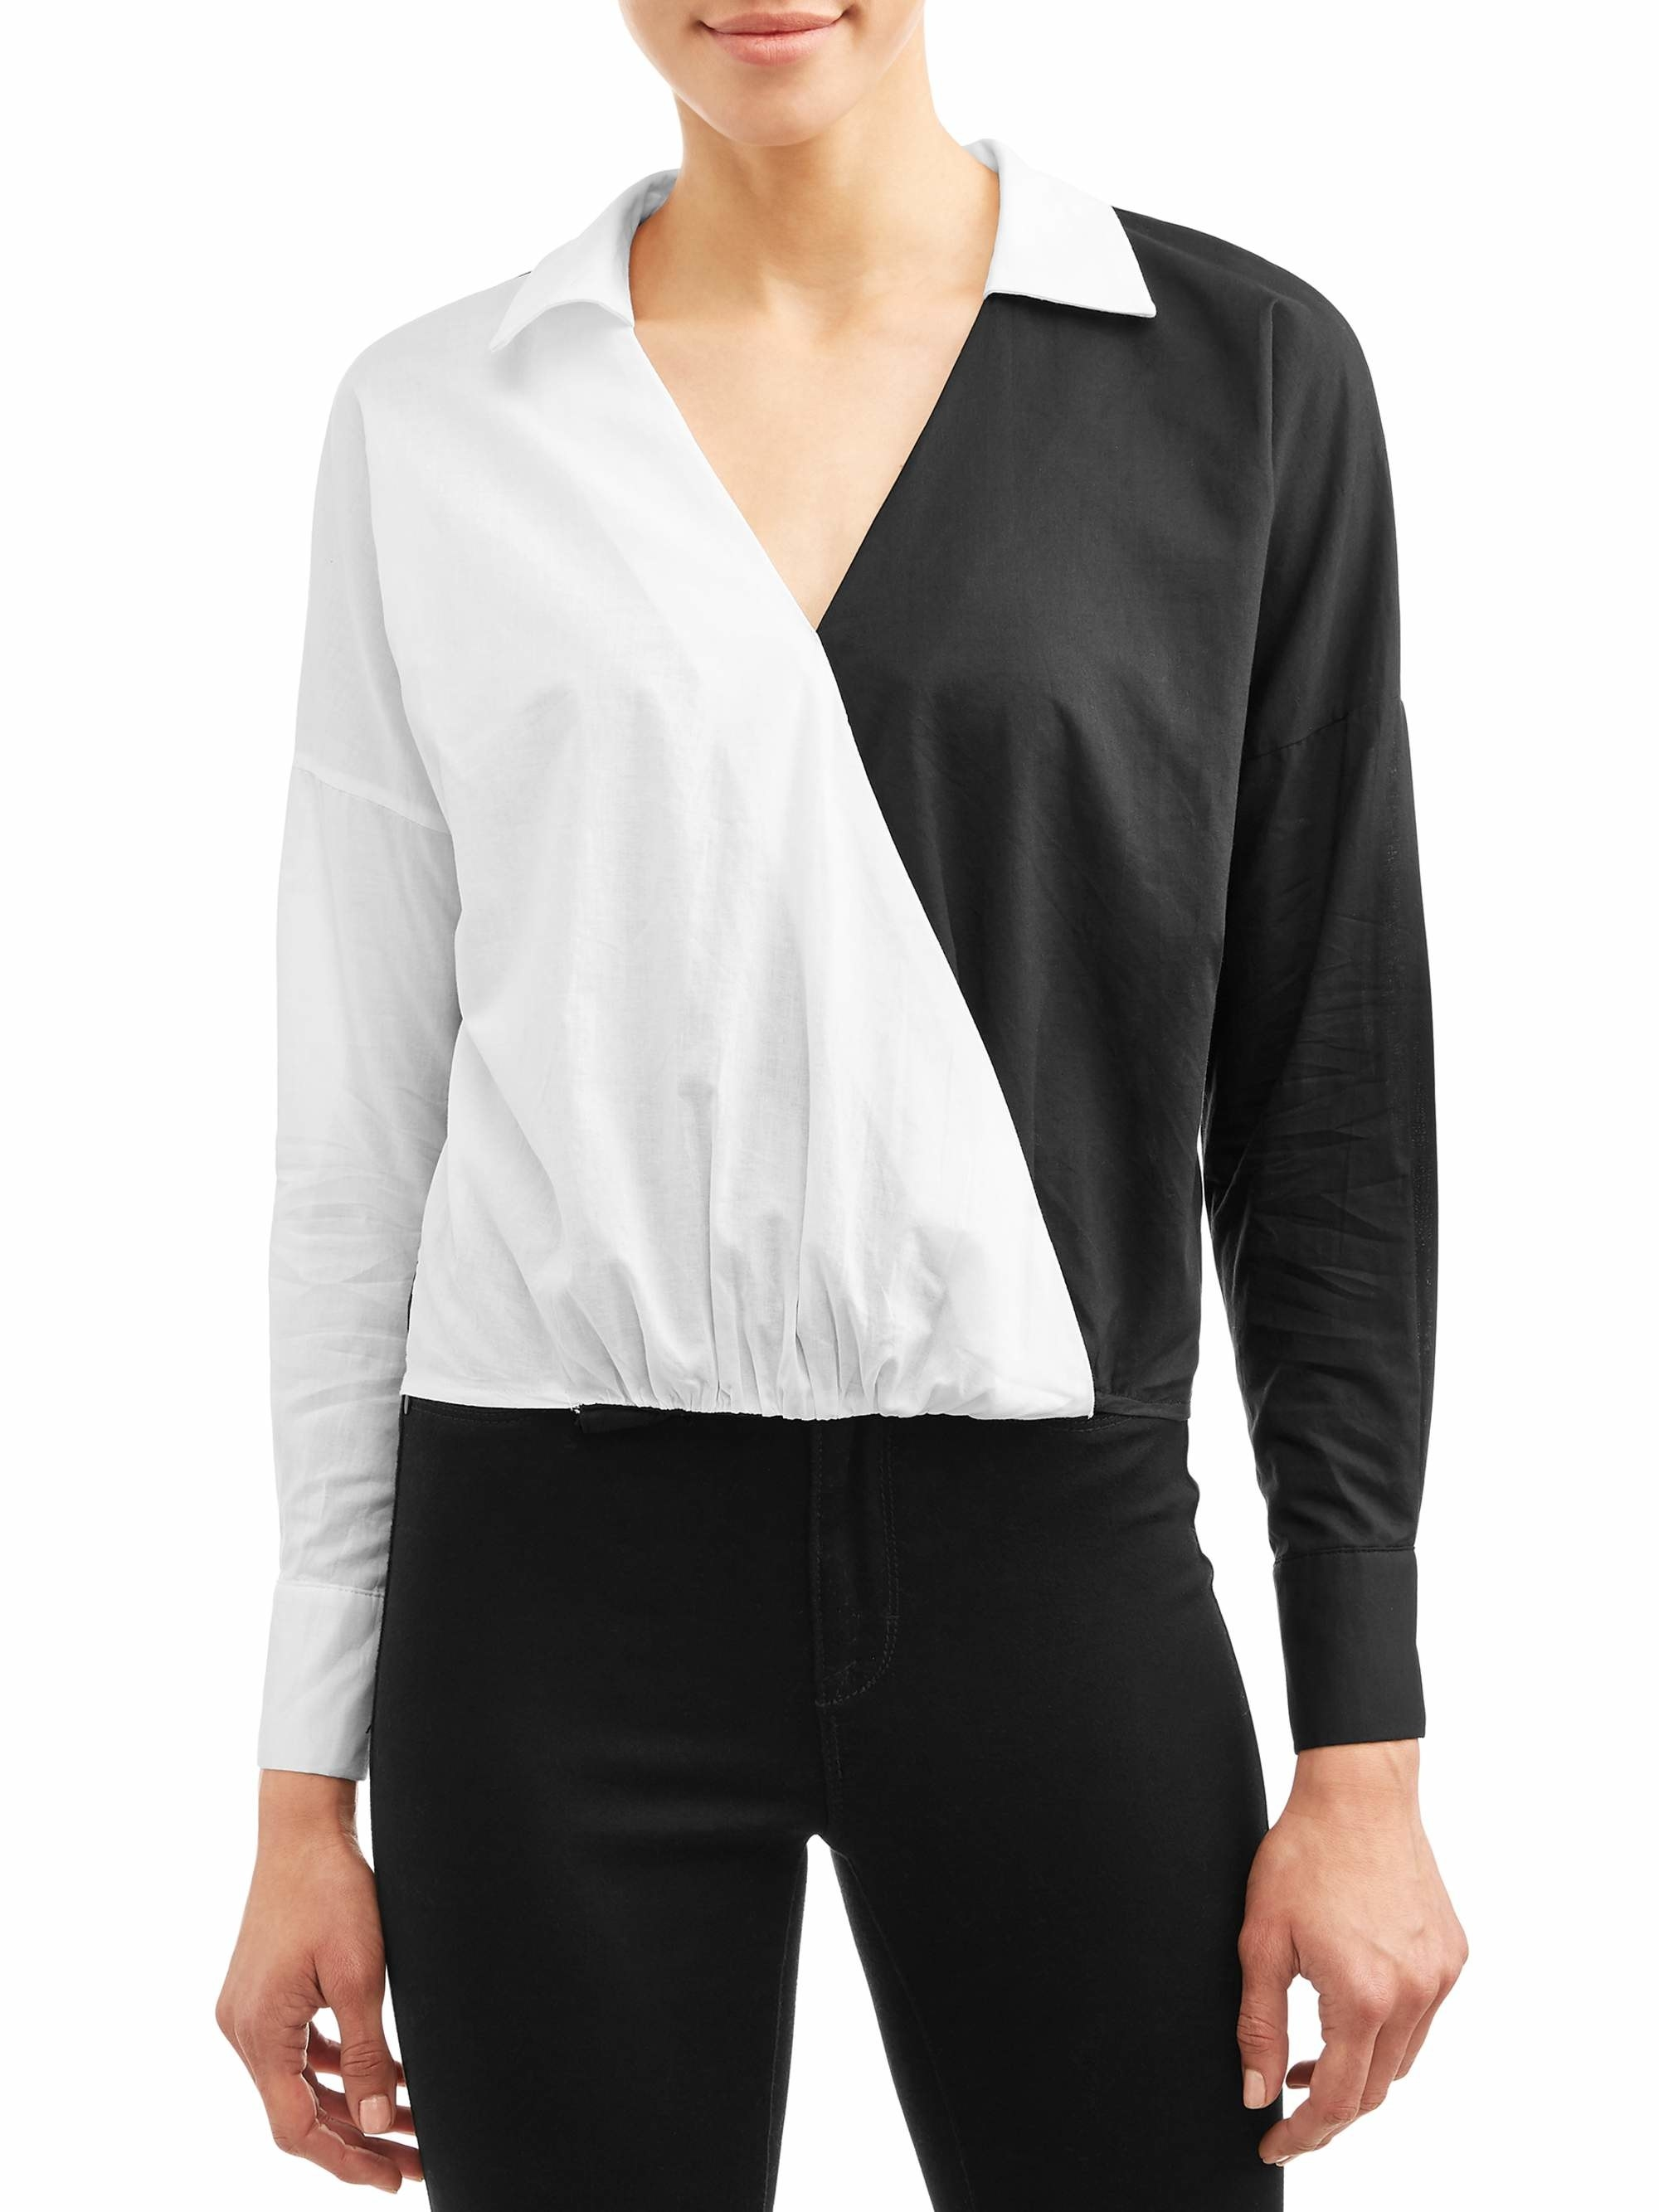 The contrasting black and white long sleeve top